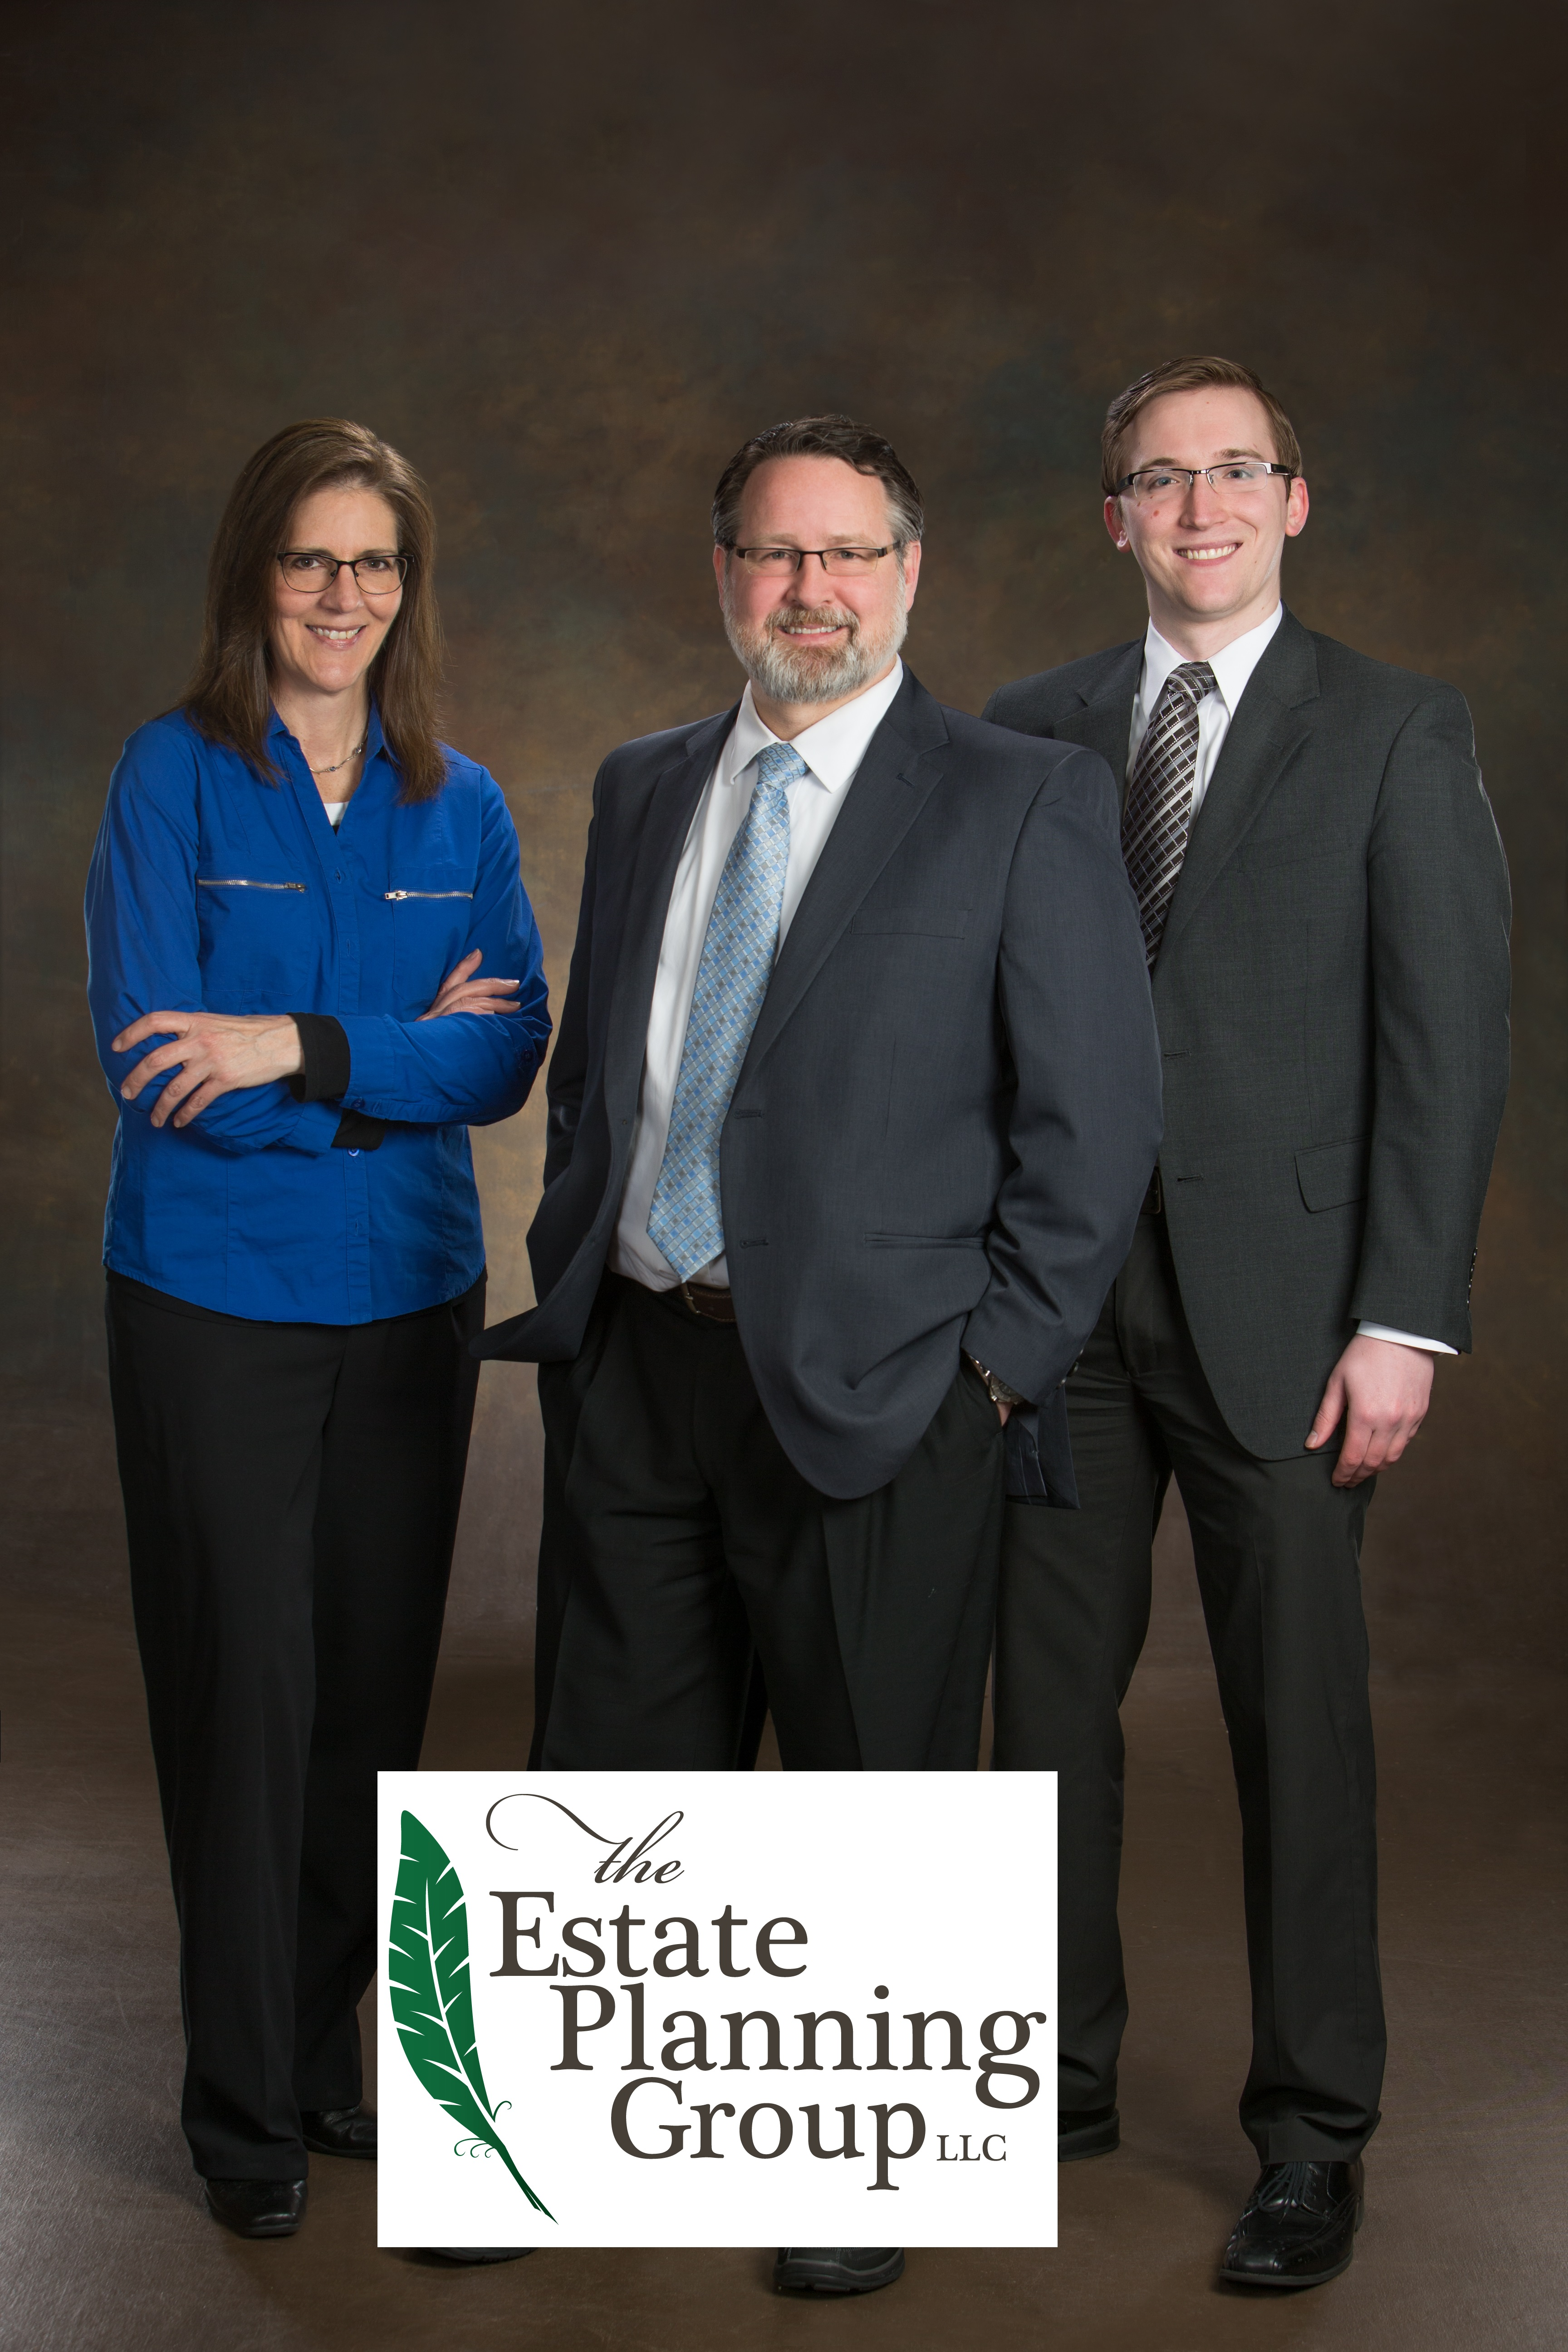 Kevin Davidson | The Estate Planning Group Contact Info | Kimberly